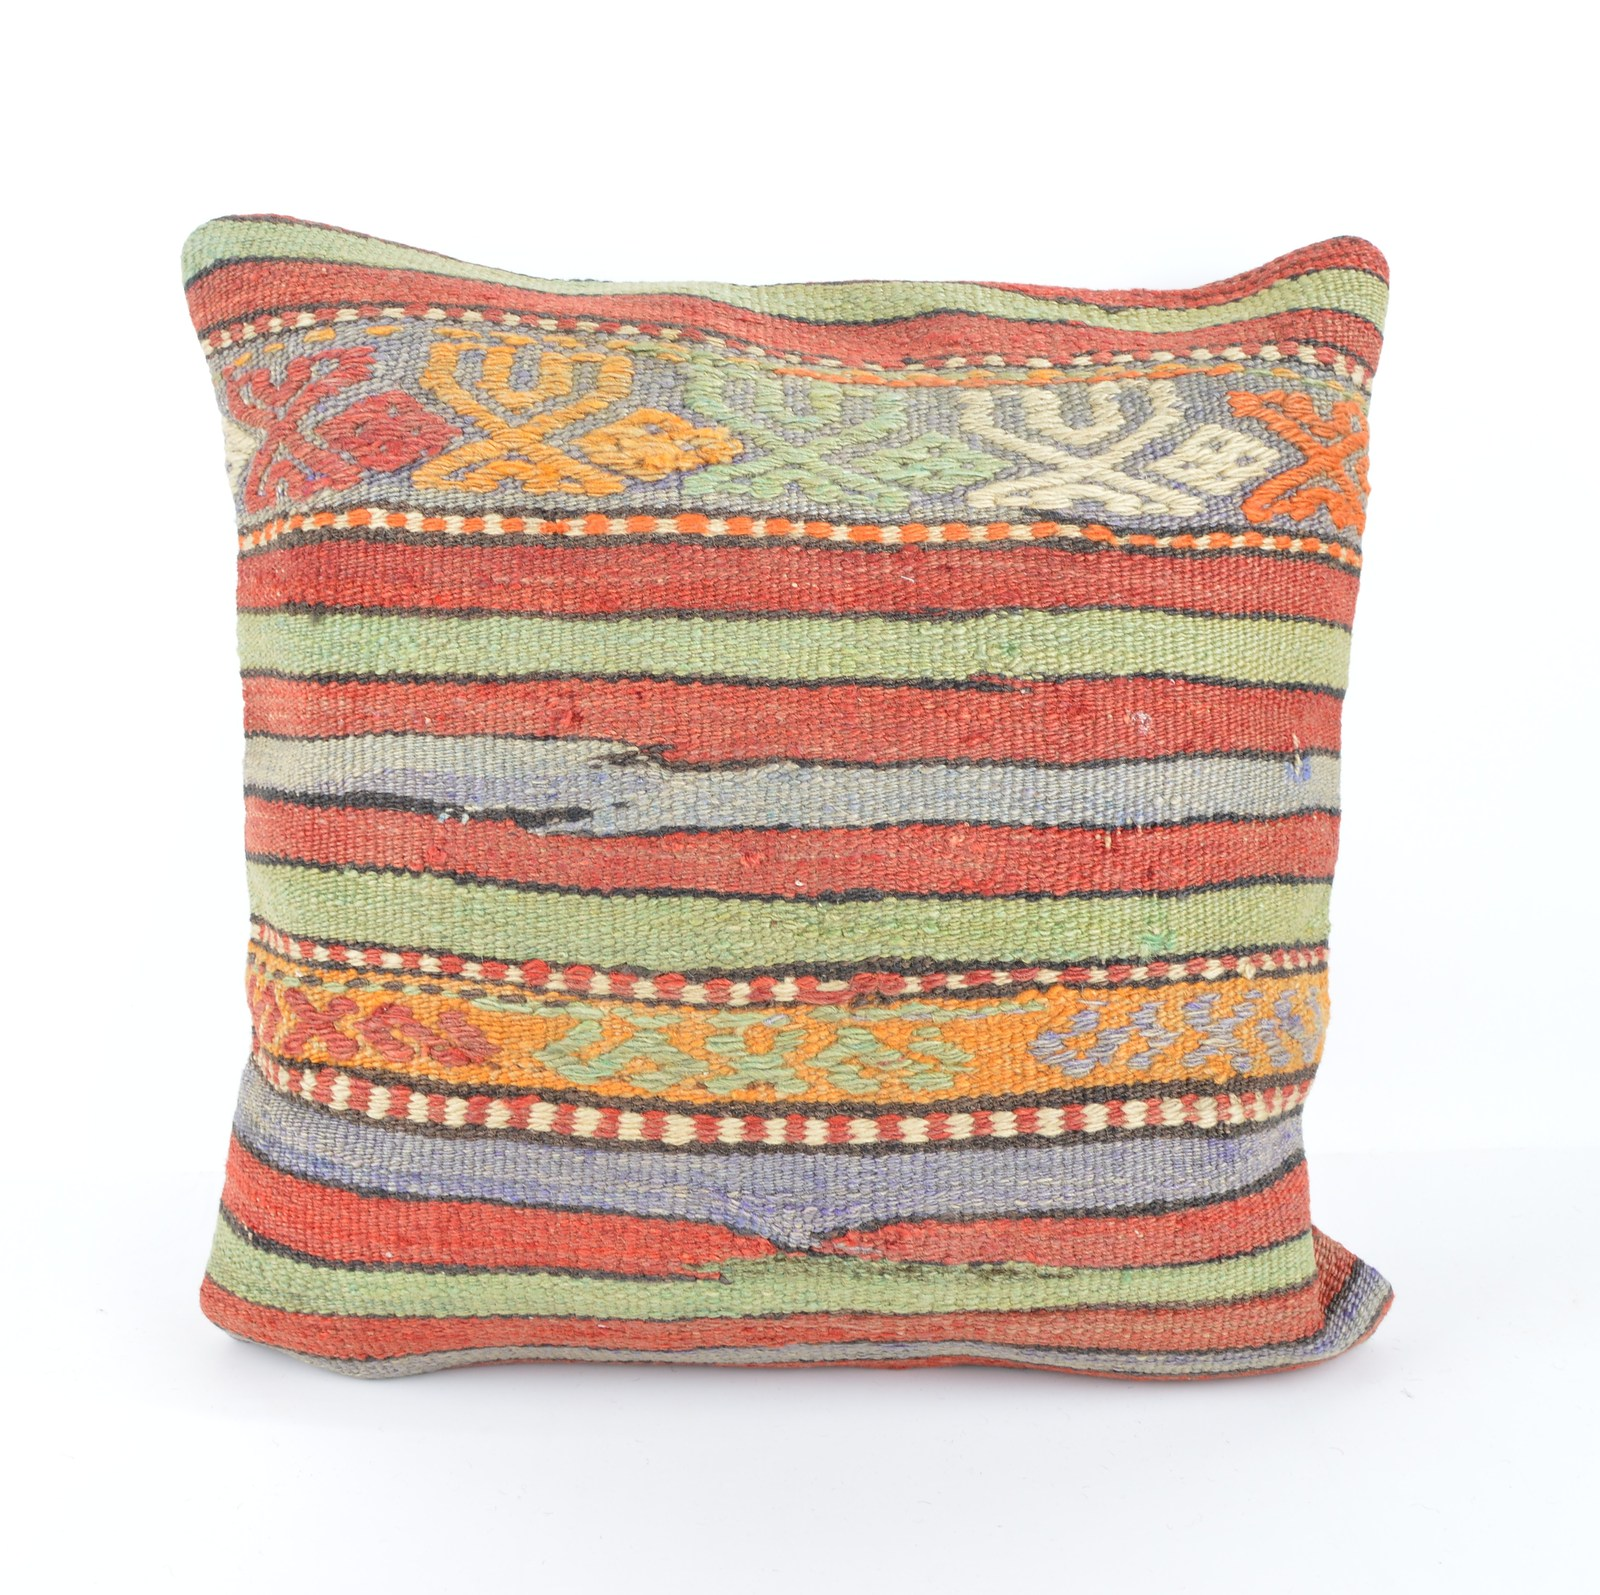 Throw Pillow Ethnic,Kilim Pillow Cover, BohemianTribal Cushion 40x40 Vintage - Pillows